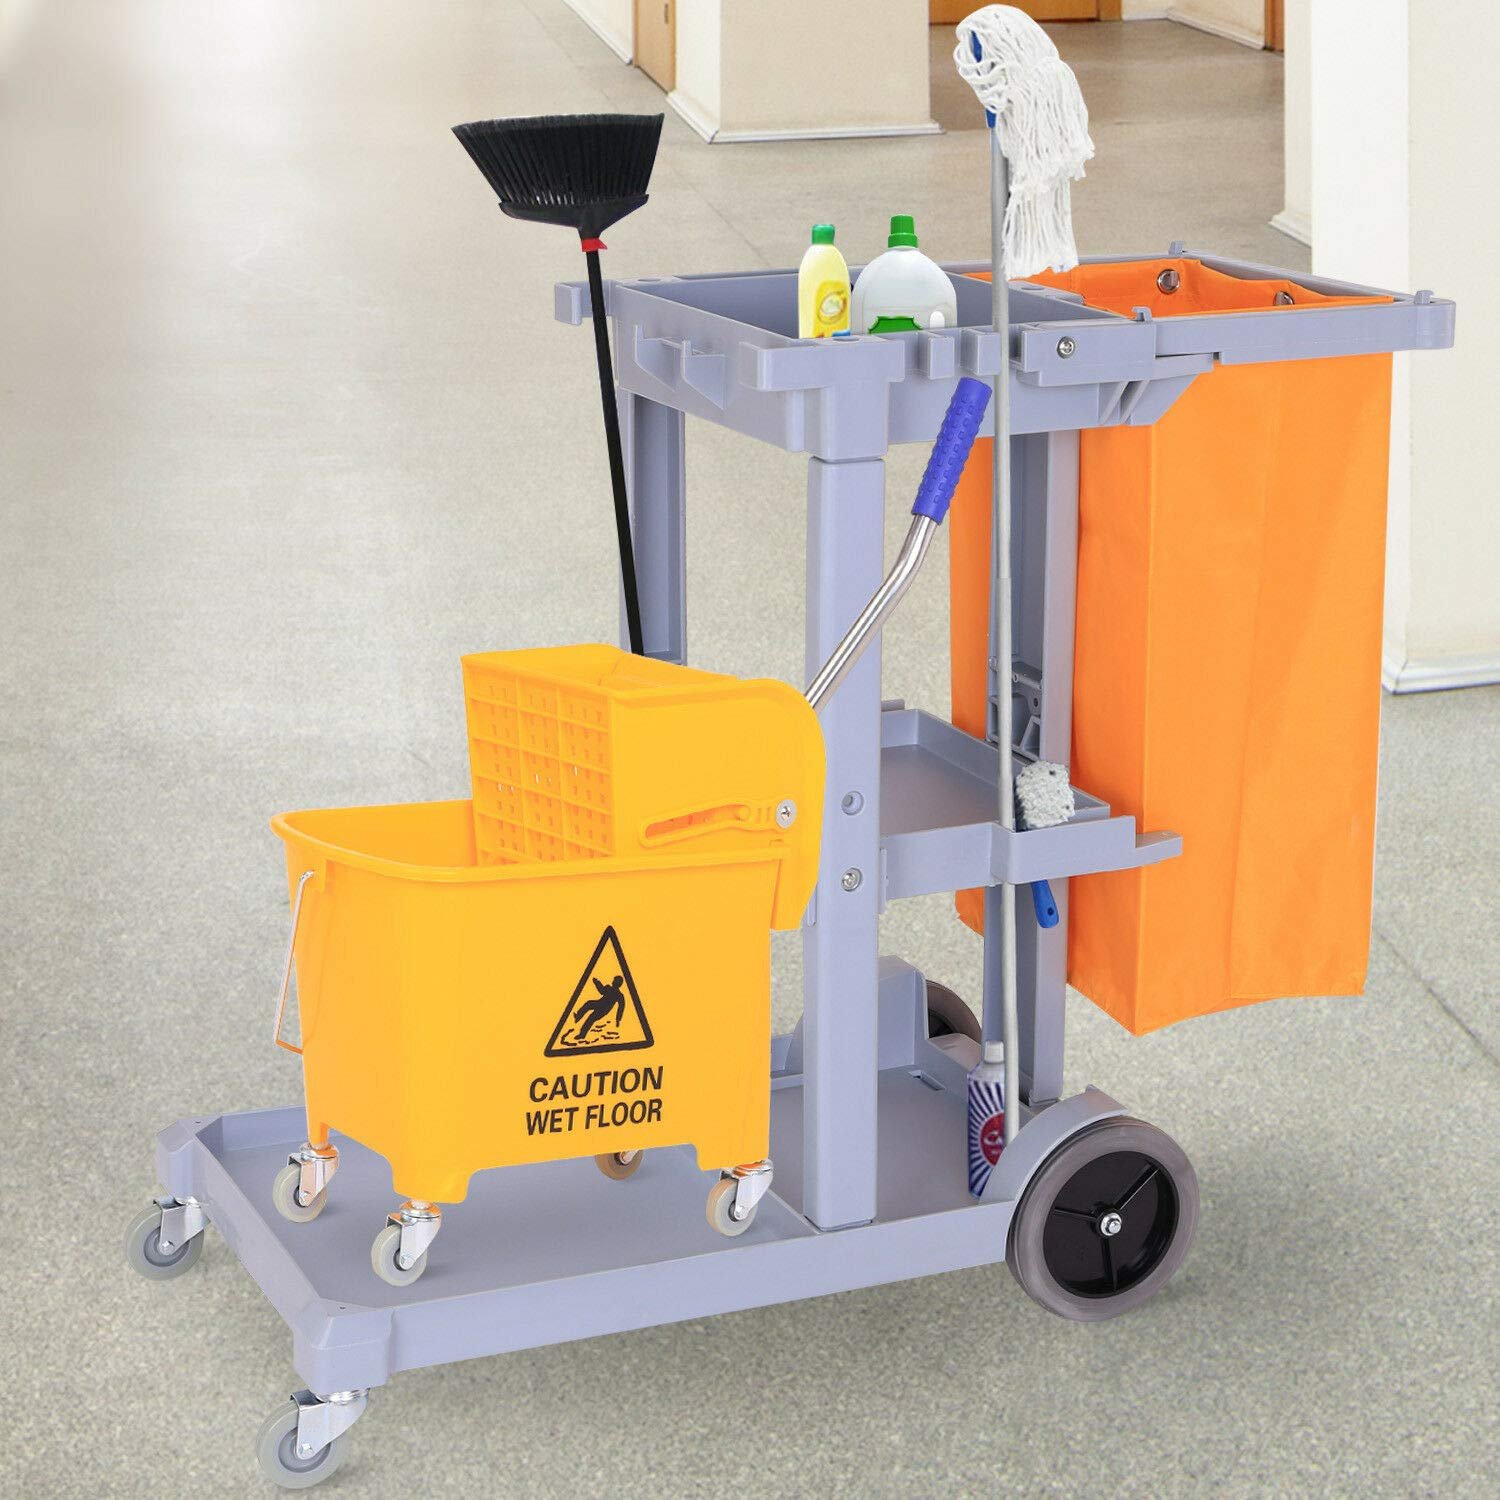 Walomes Janitorial Cleaning Cart Cleaner Cleaning Tool Rolling Janitor UItility Cart w/ 3 Shelves & Vinyl Bag by Walomes